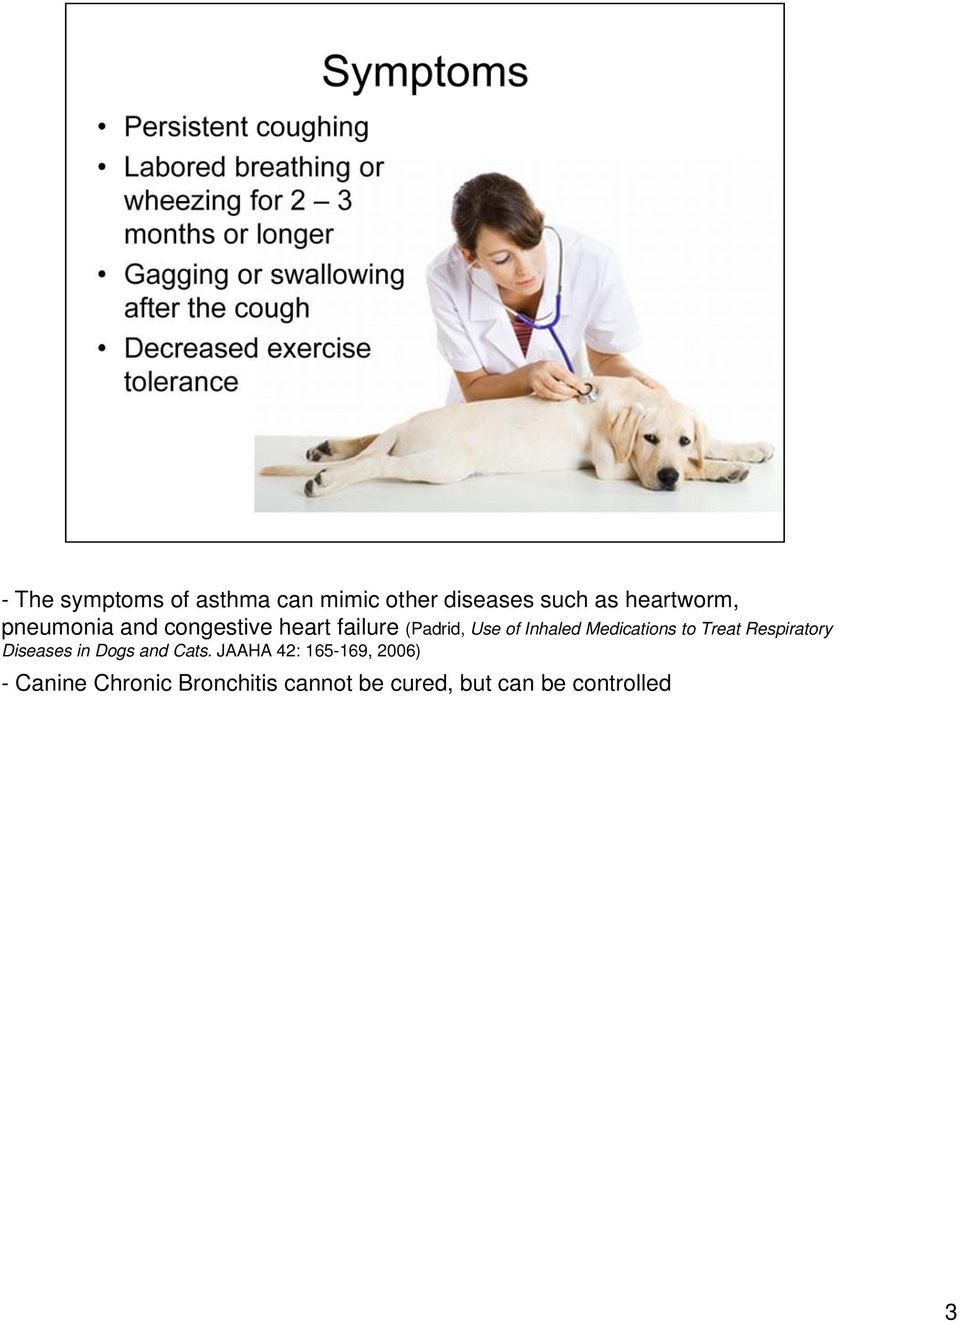 Canine Chronic Bronchitis cannot be cured, but can be